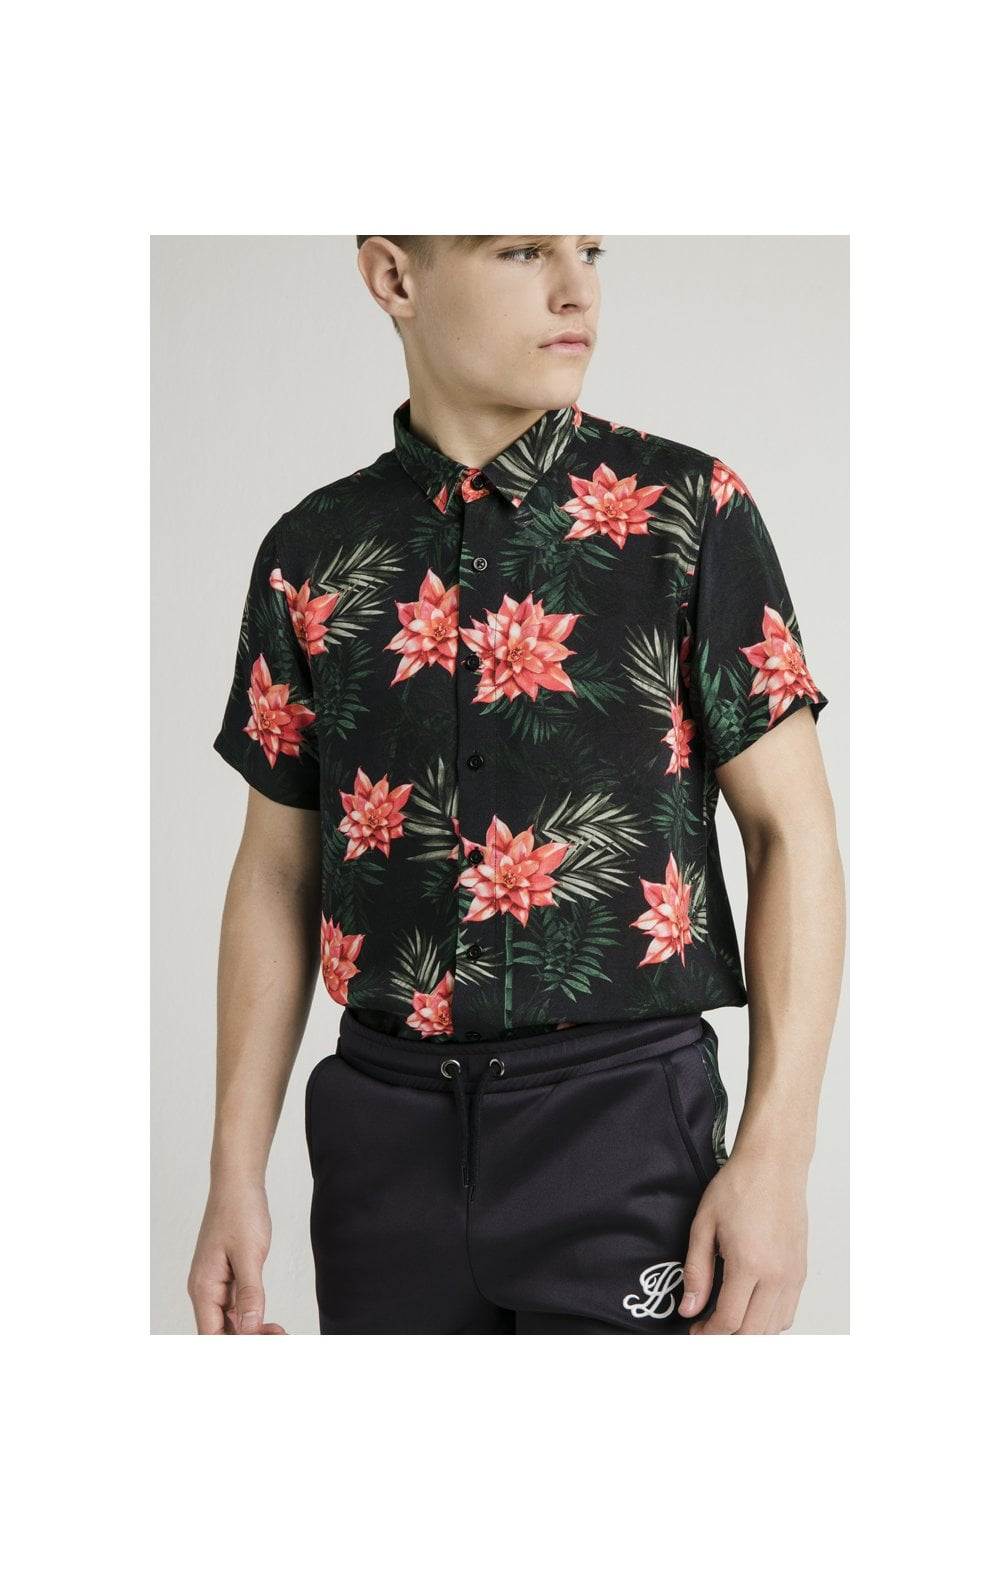 Illusive London Resort Shirt - Navy Floral